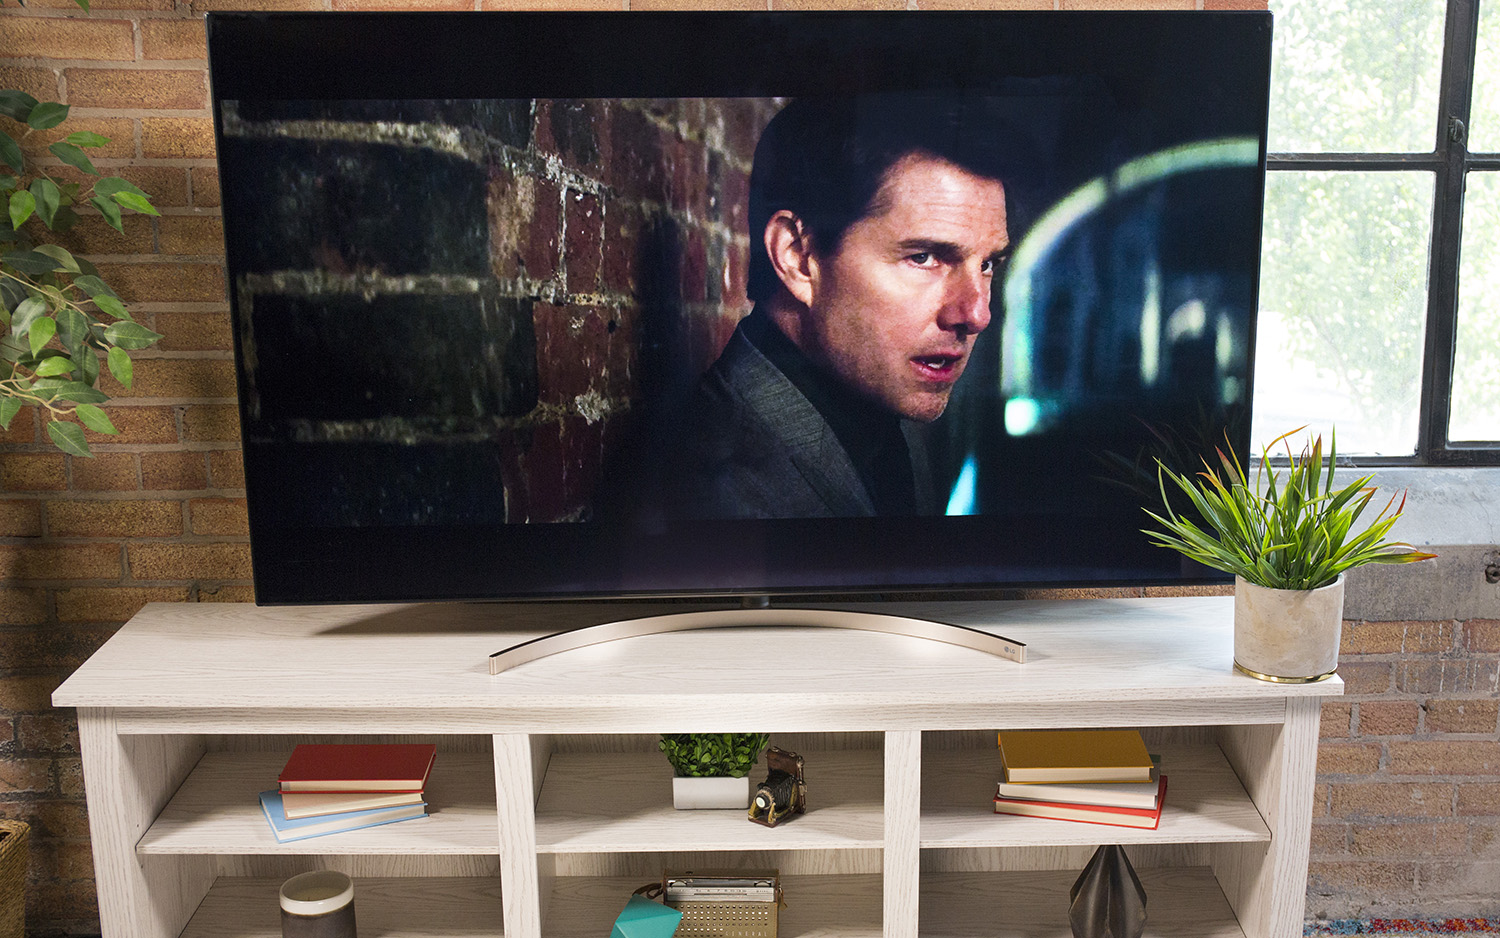 LG 65SK9500 Super UHD 65-Inch TV - Full Review and Benchmarks